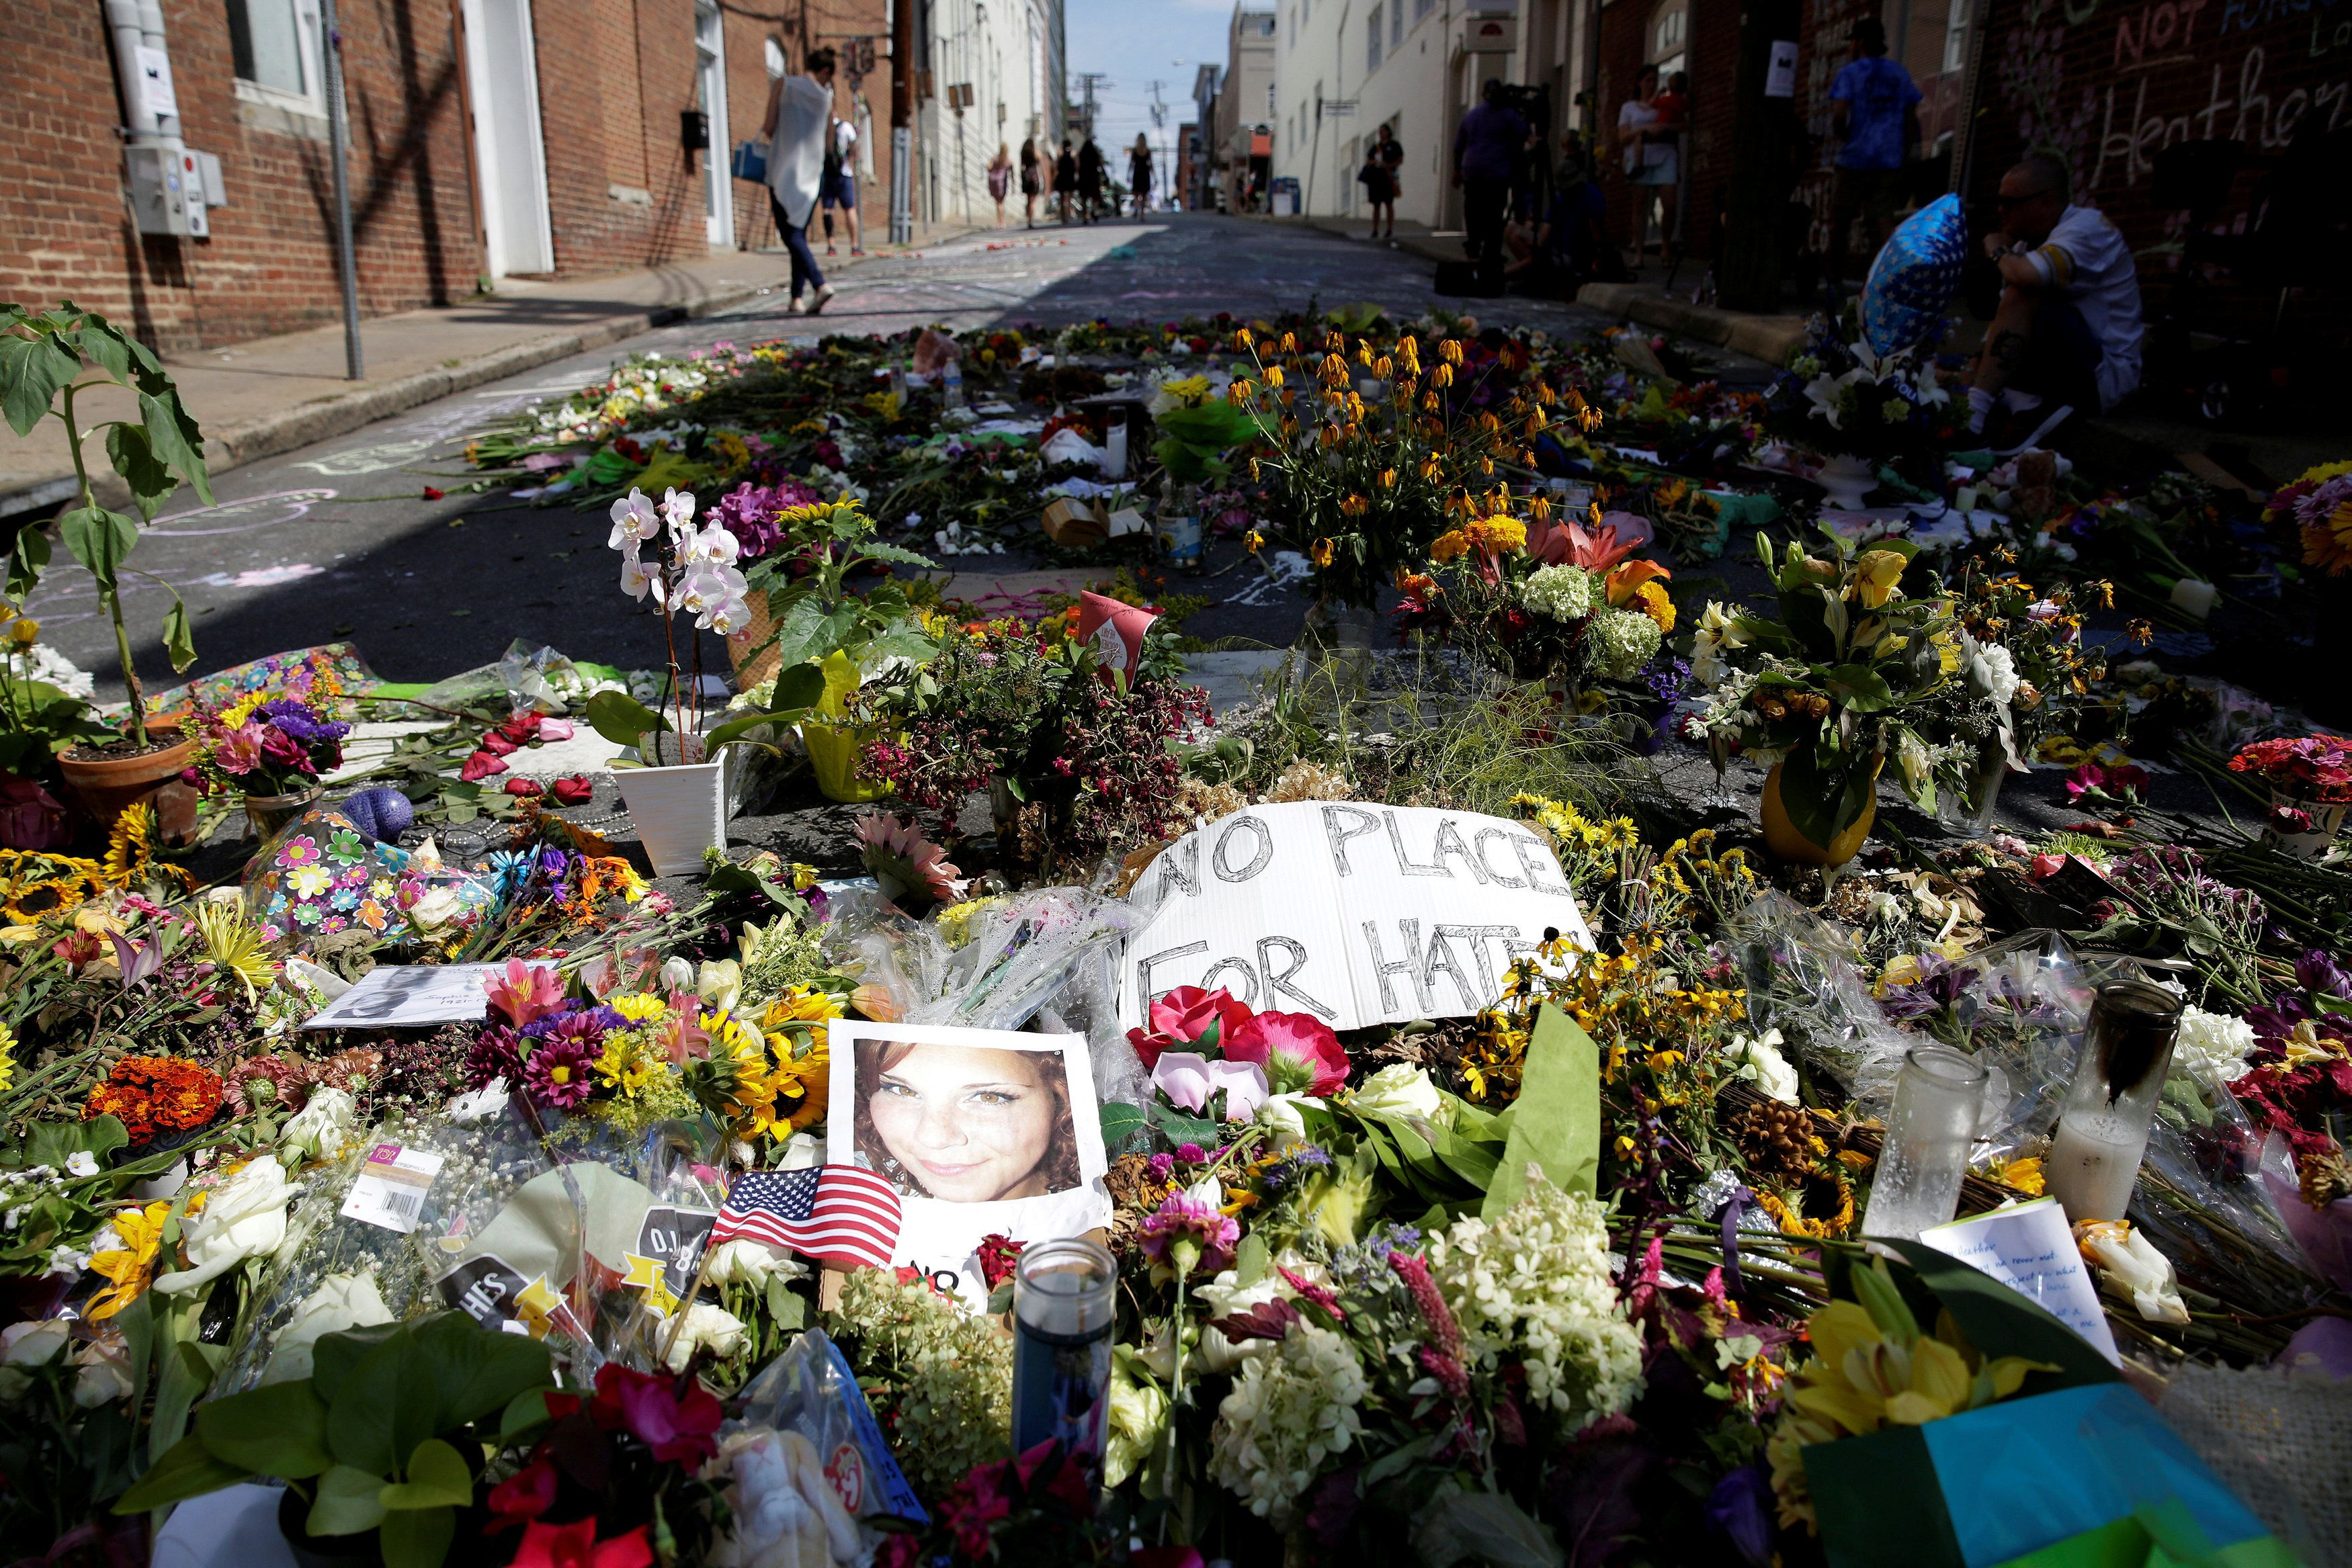 Flowers are pictured on the street where Heather Heyer was killed when a suspected white nationalist crashed his car into anti-racist demonstrators in Charlottesville, Virginia, U.S., August 16, 2017.   REUTERS/Joshua Roberts     TPX IMAGES OF THE DAY